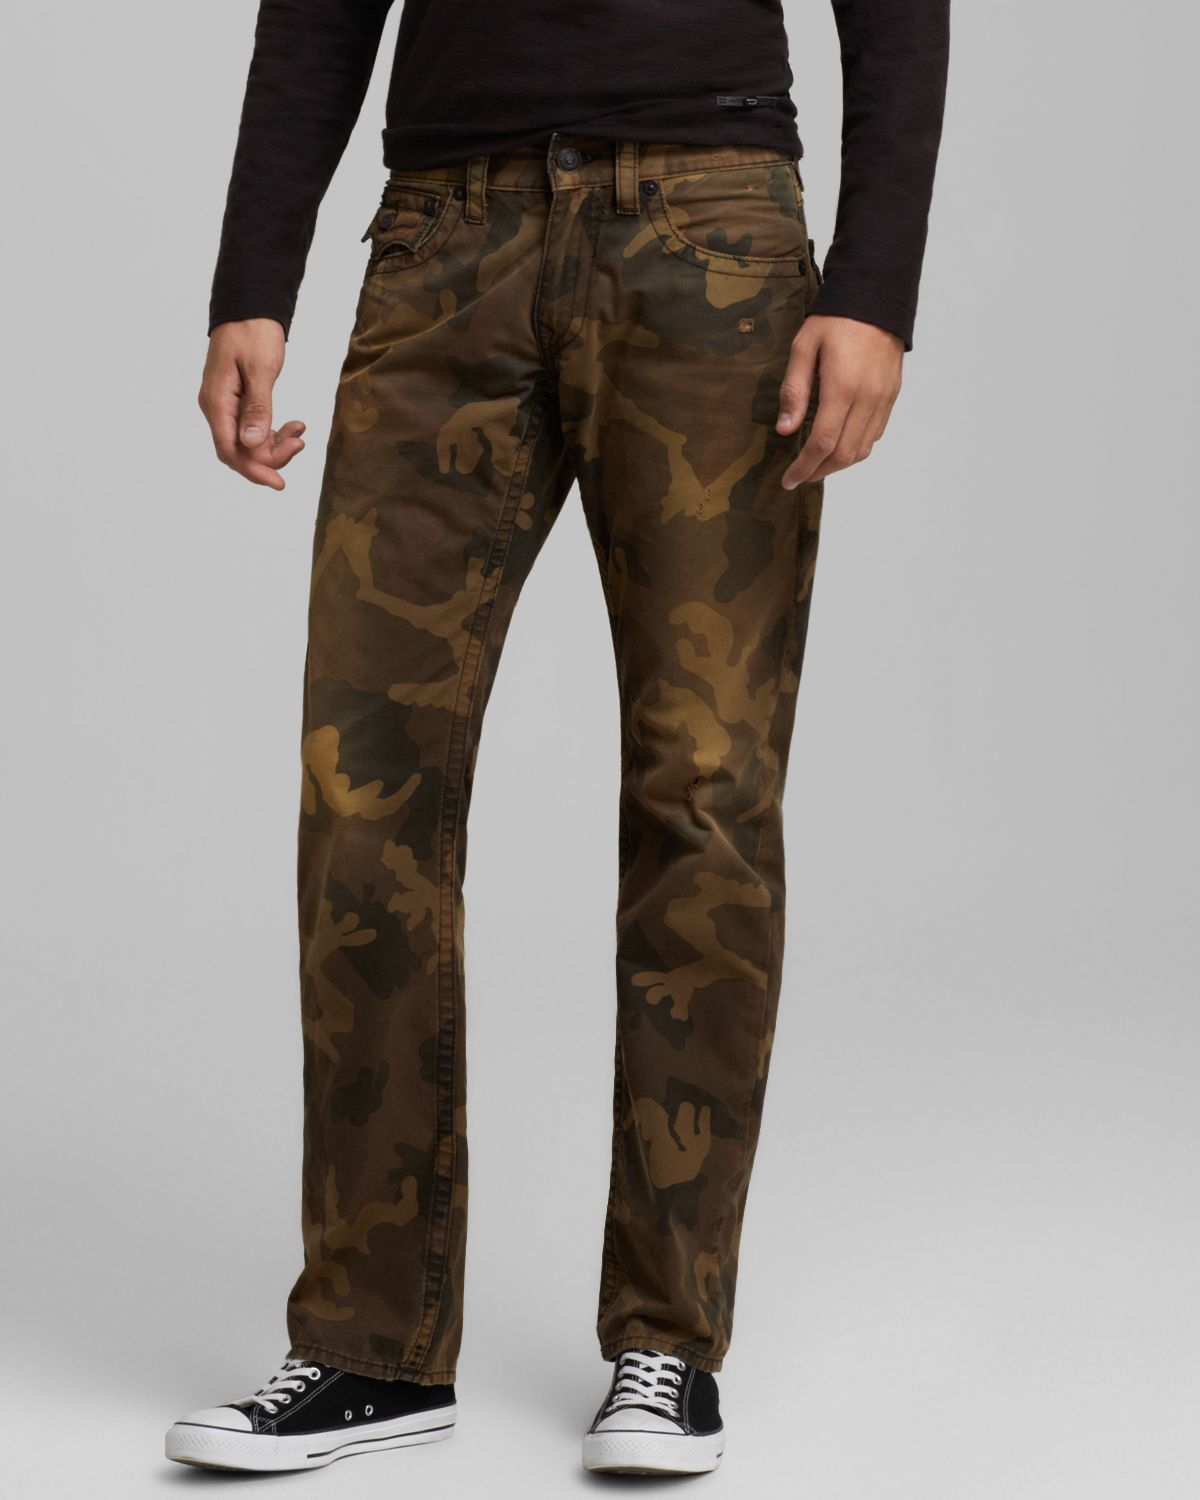 Lyst - True Religion Jeans Ricky Straight Fit in Camo in Brown for Men 9394c3b37b41